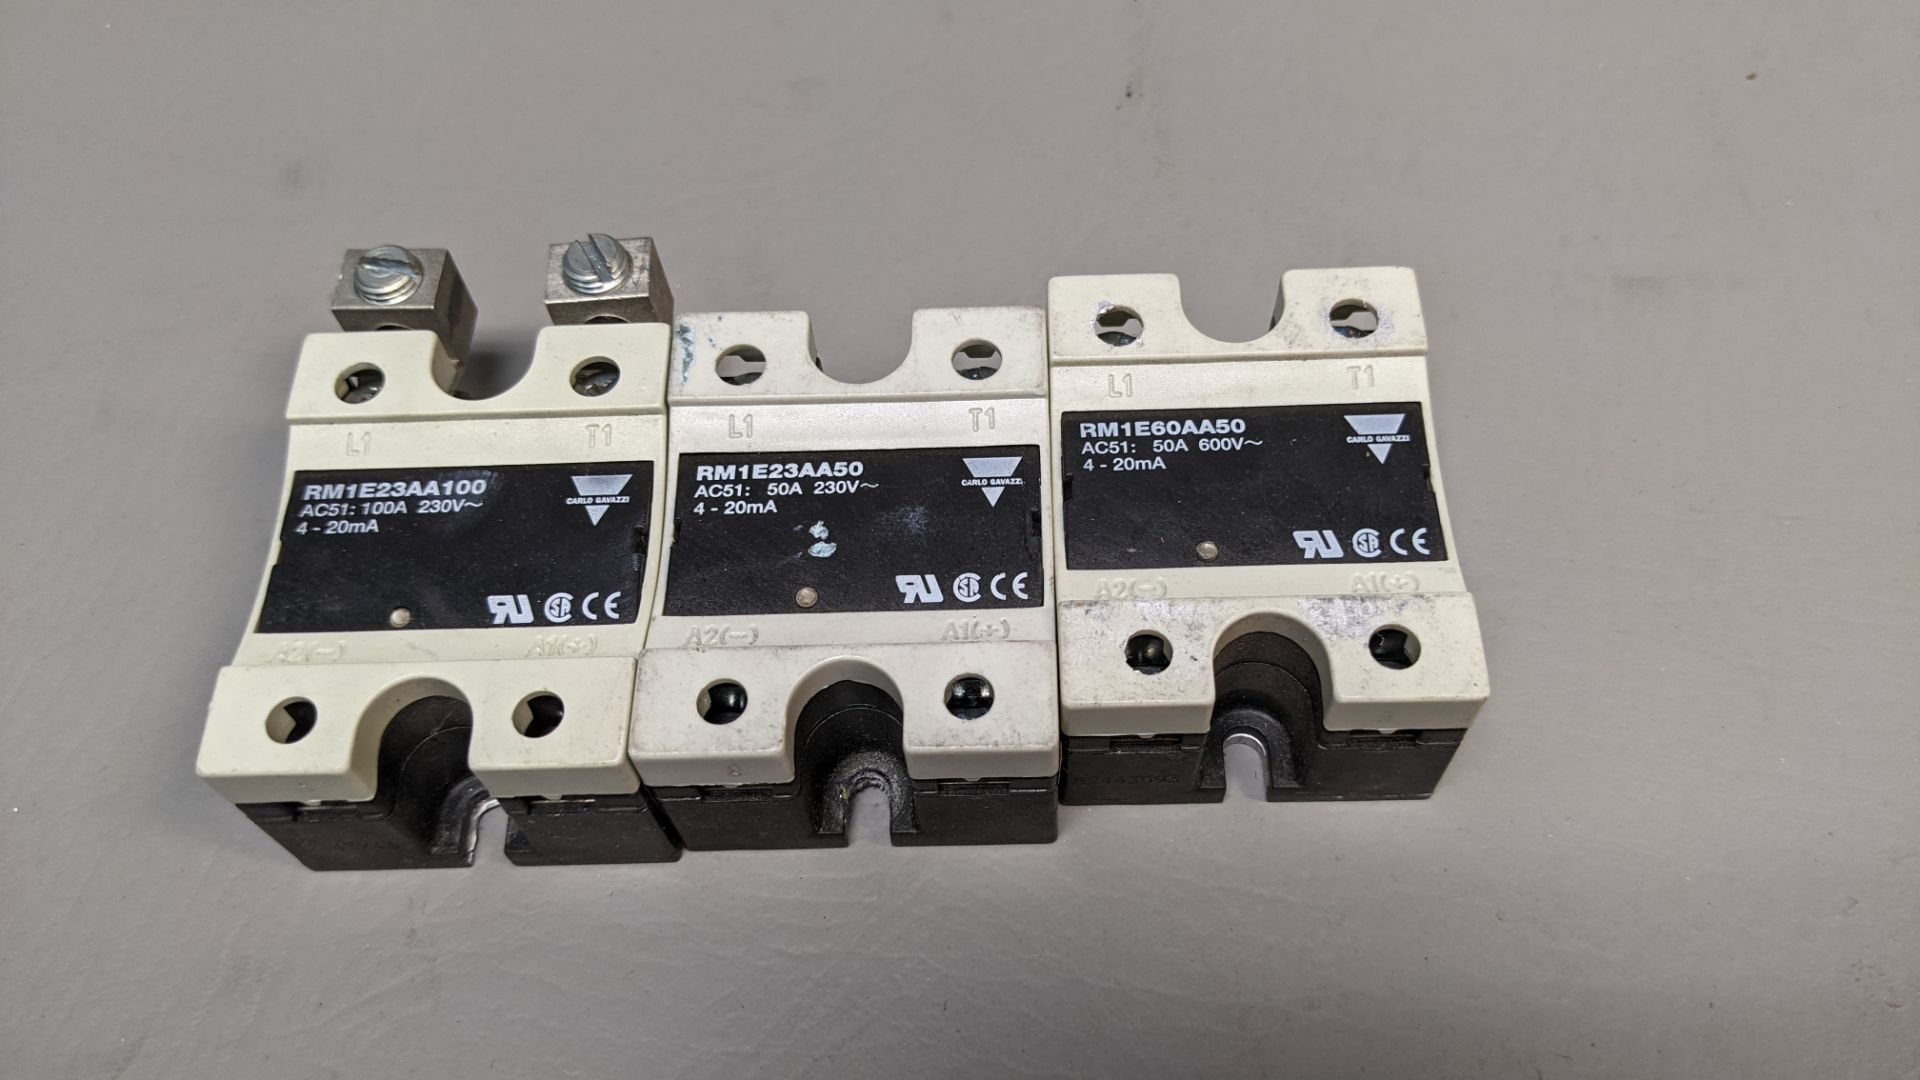 LOT OF CARLO GAVAZZI SOLID STATE RELAYS